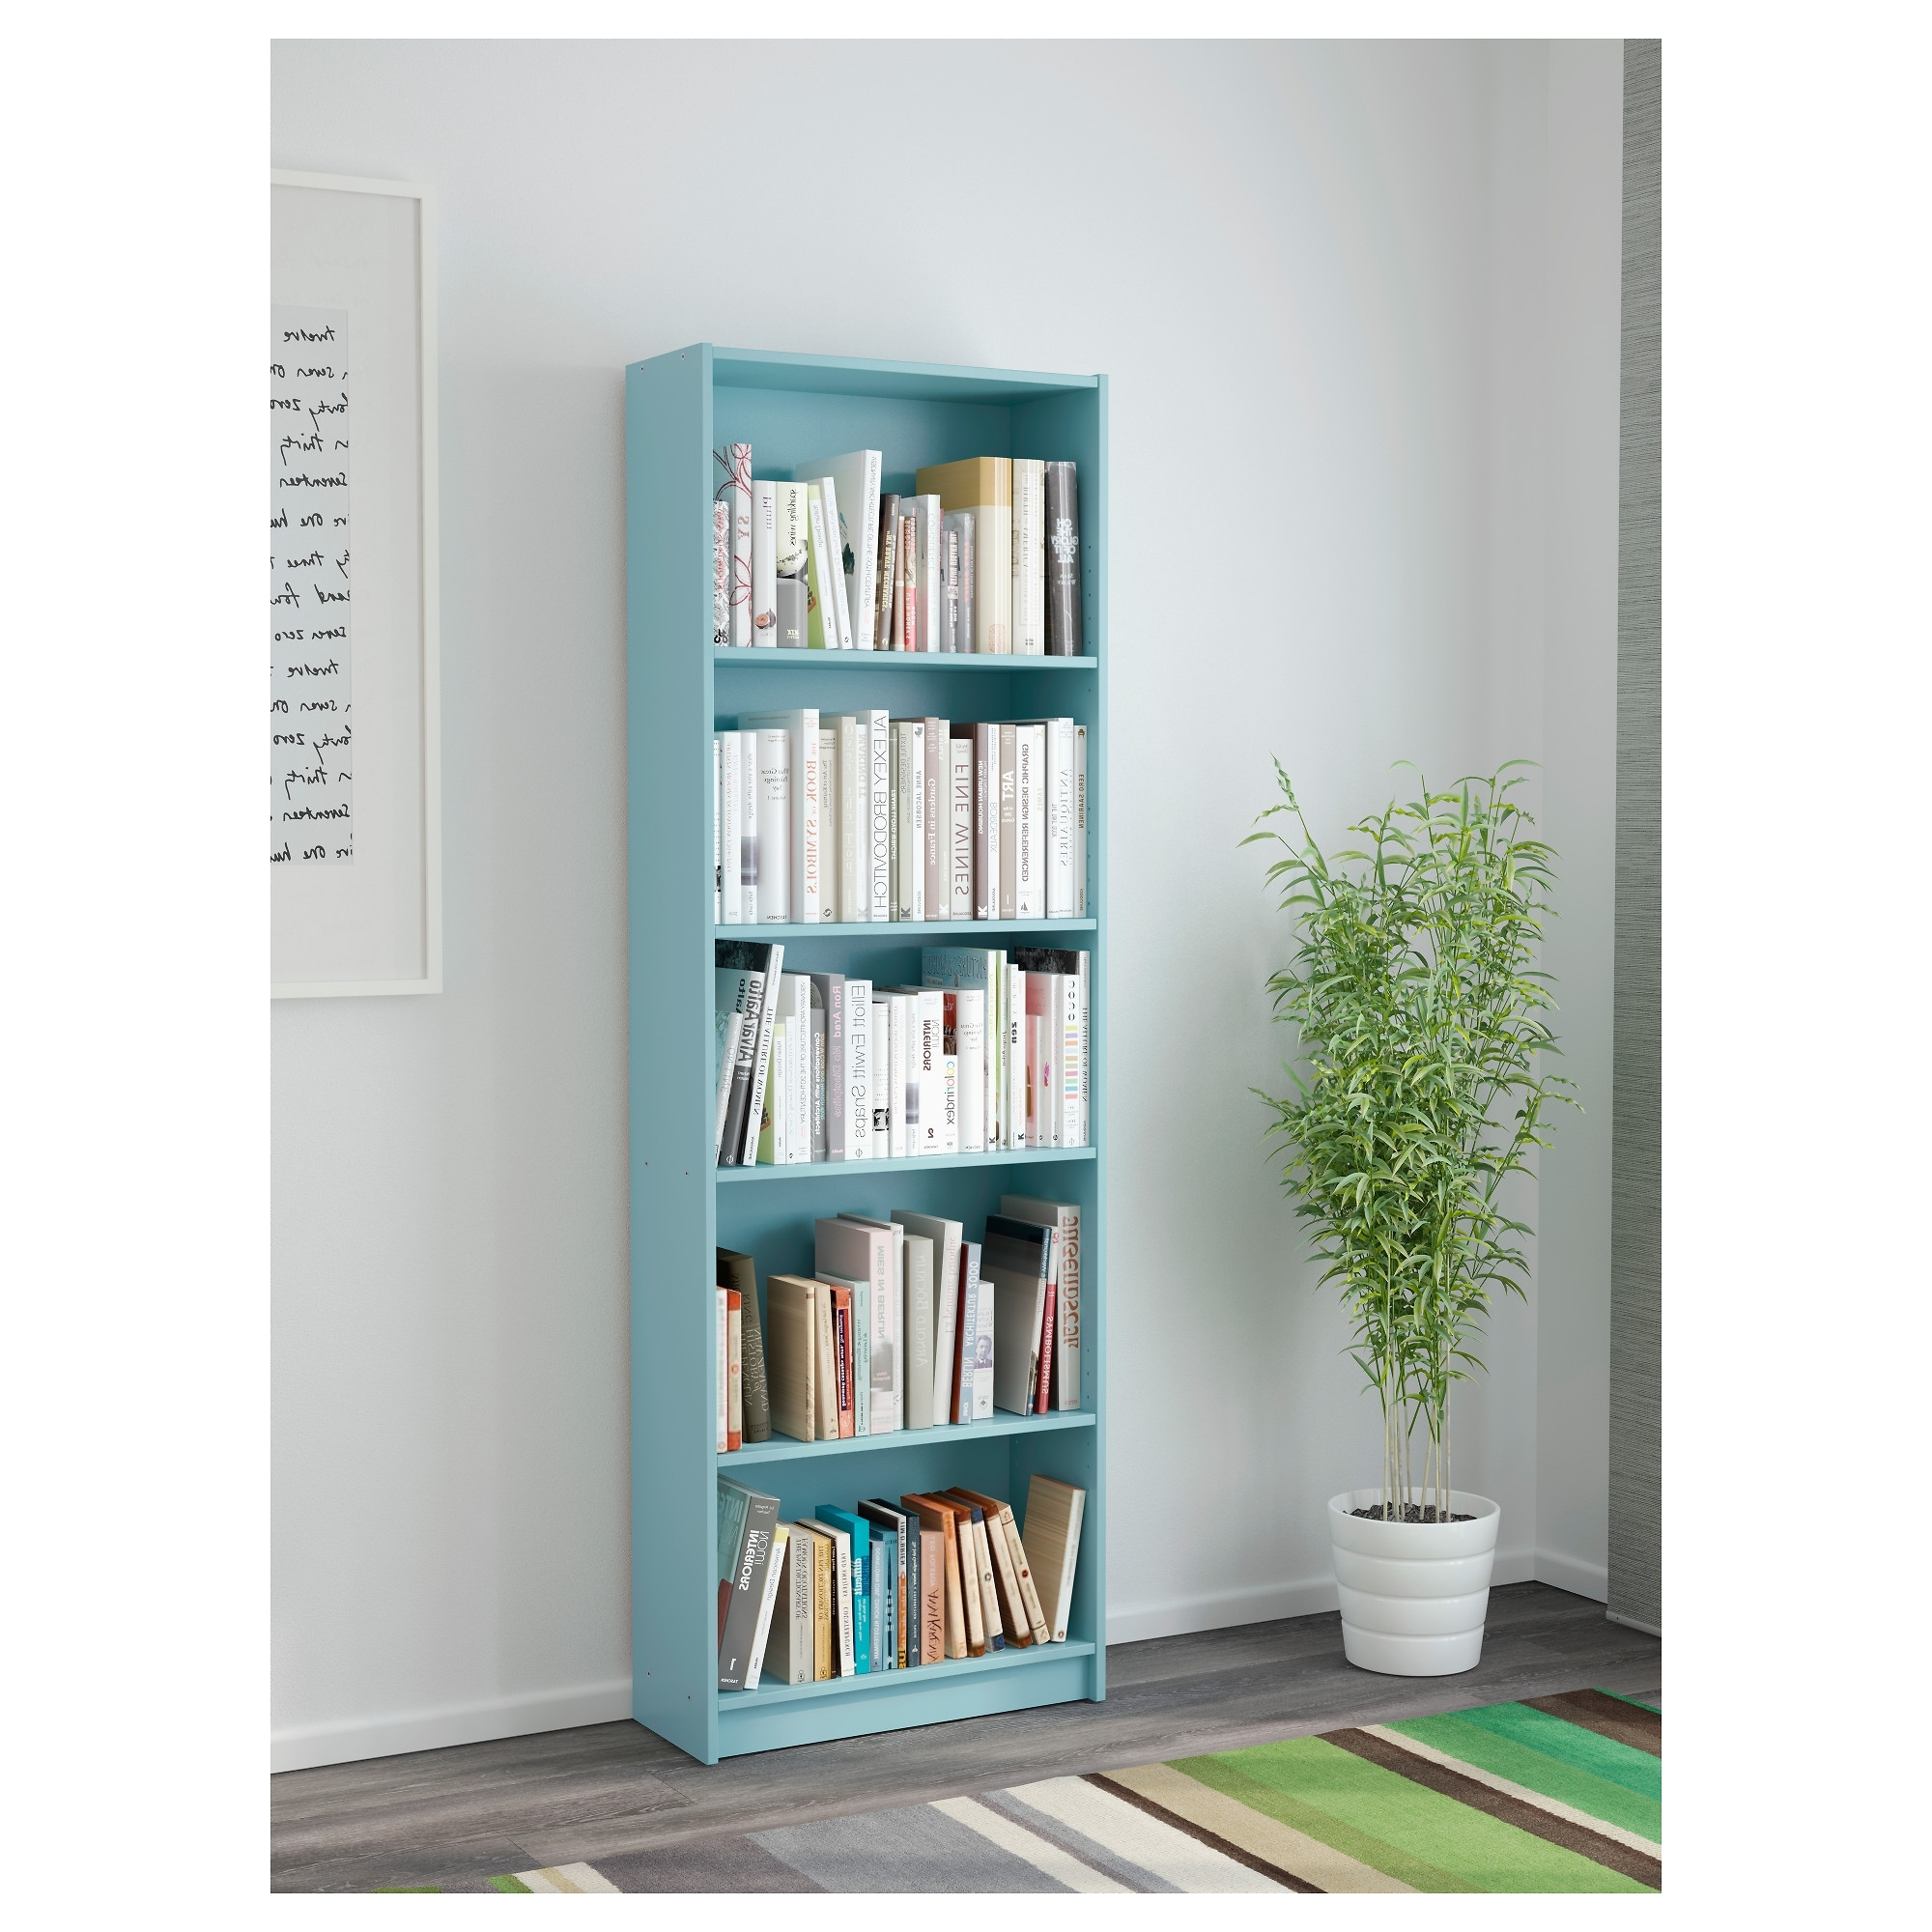 cubes grey shop dbn angular bookcase bookshelf crowdyhouse blue green totem on